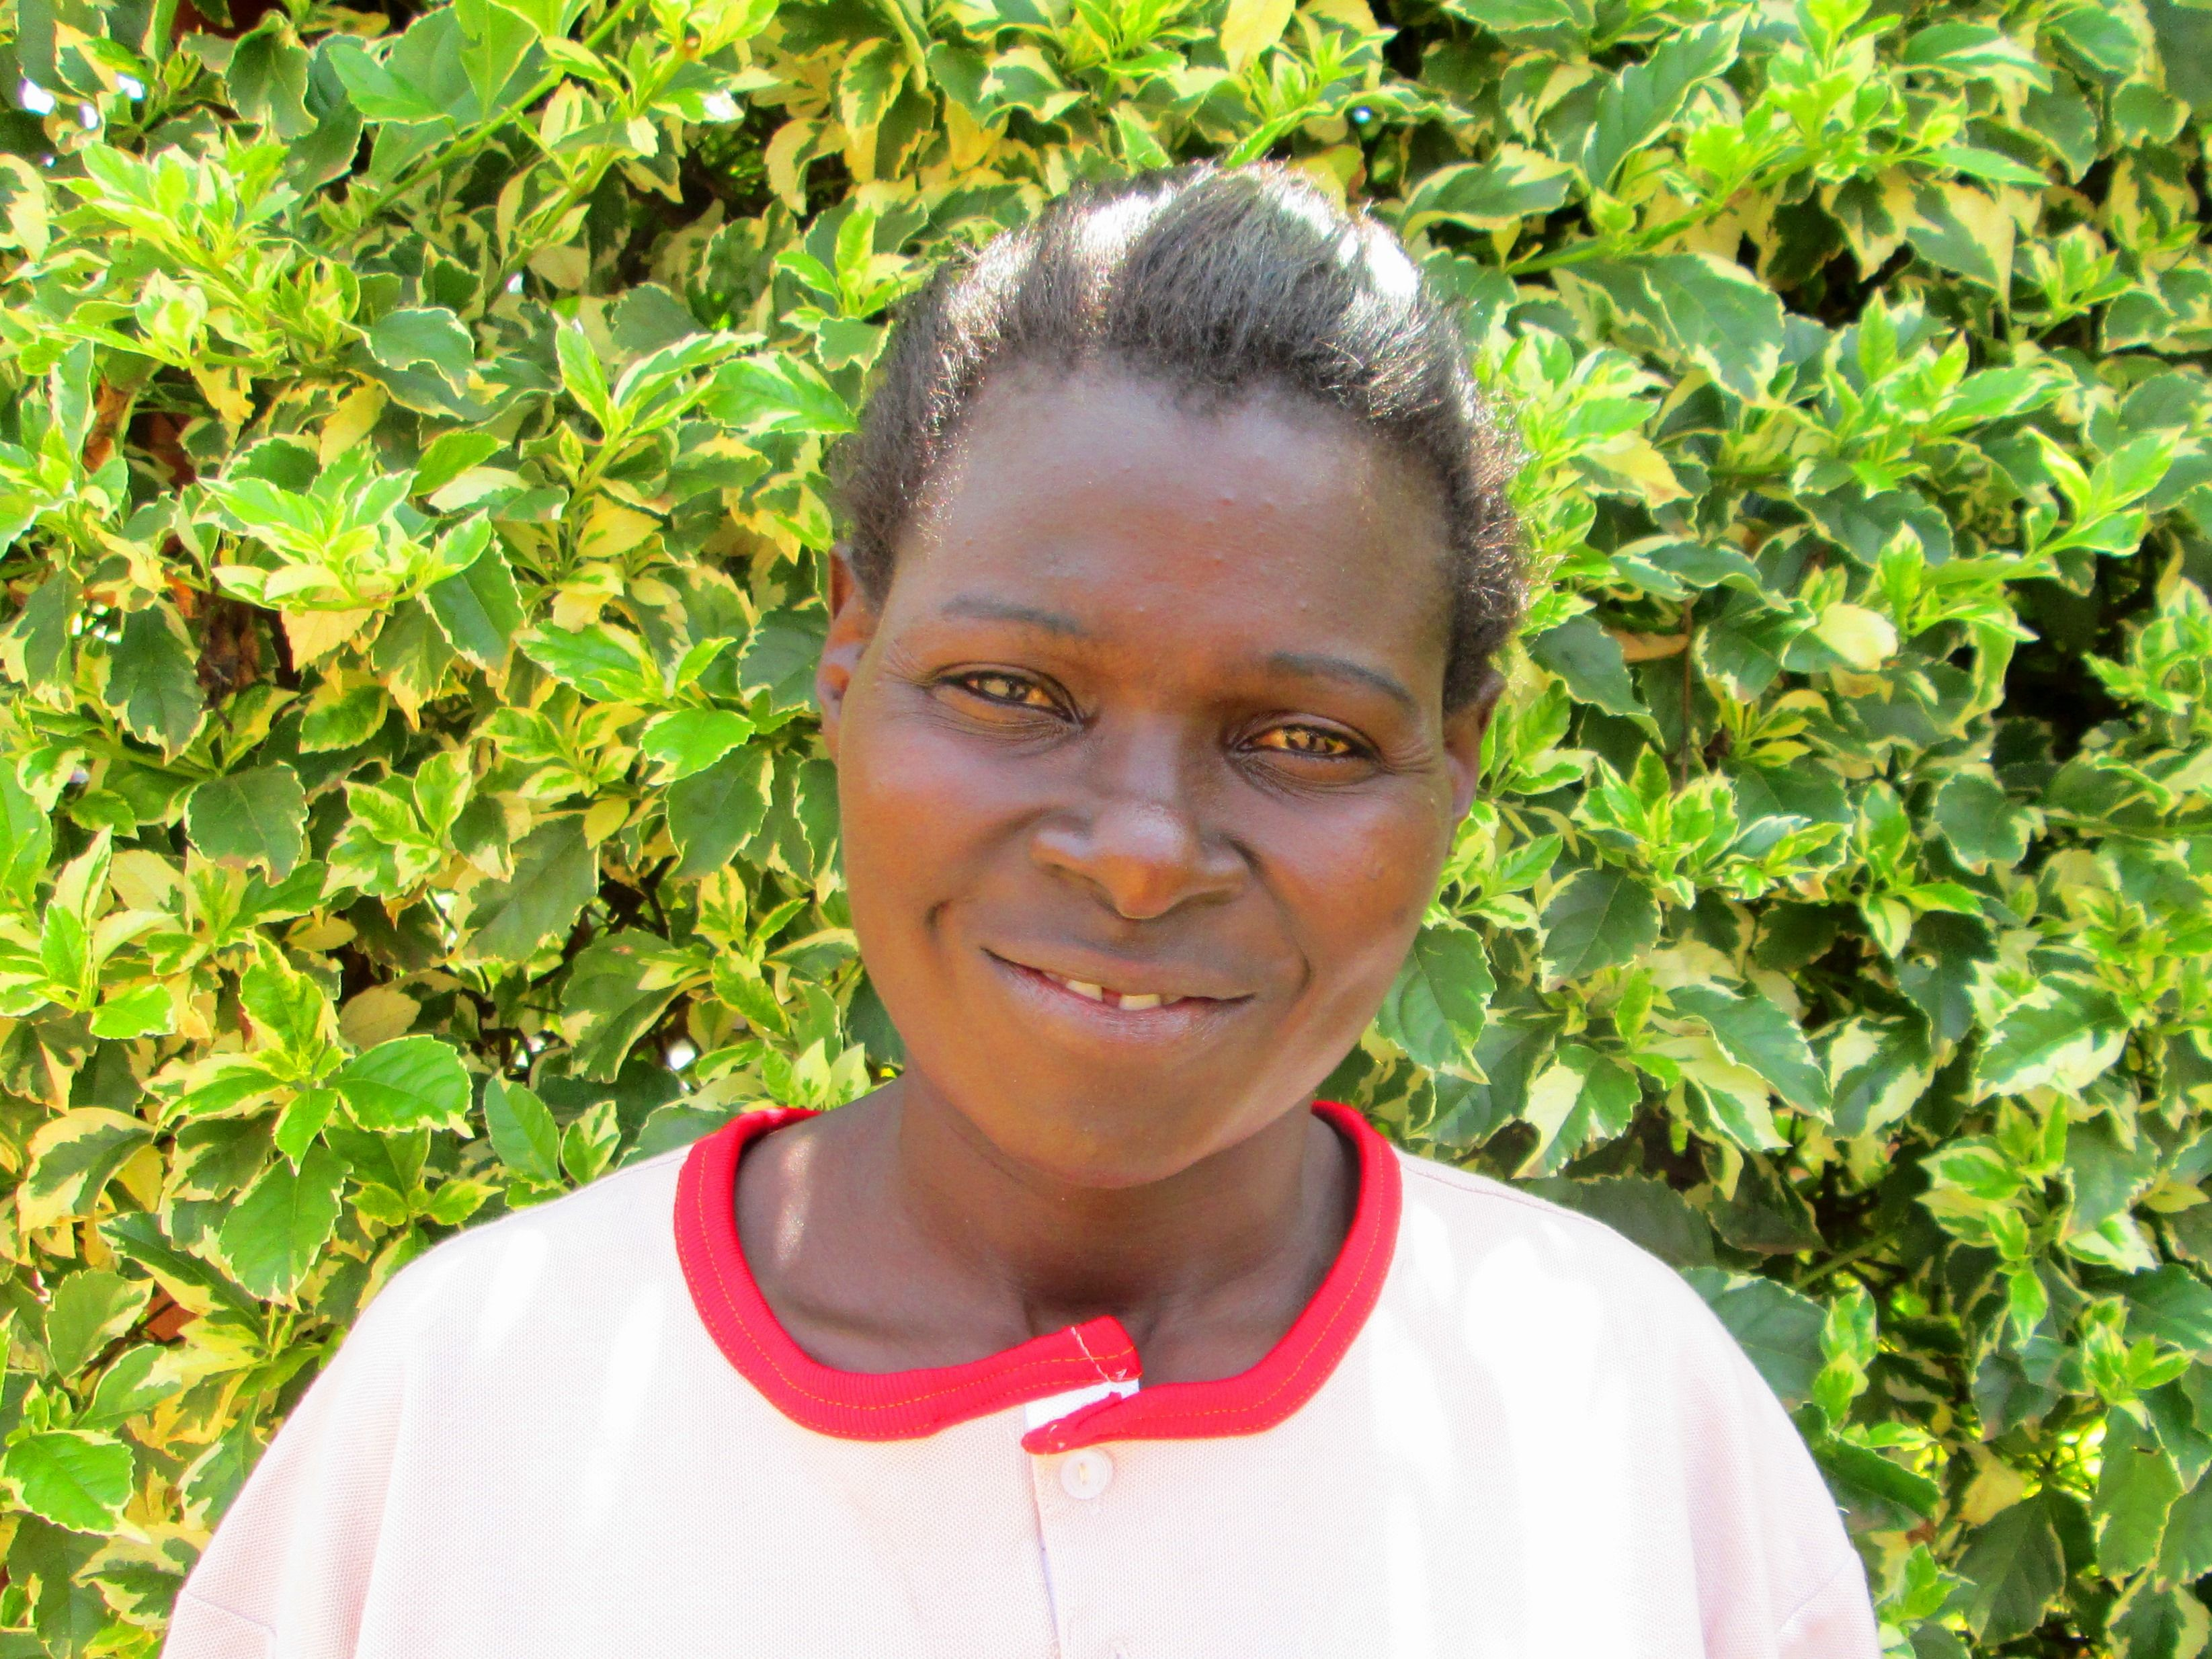 Meet: Hilda Awuor // J127 Sewing Participant.  Q1: Why do you want to be apart of James127 training? I hope the training will help me get a job so I can take care of my family and give them a comfortable life. Q2: Tell us about your family. I have a father who lives with my two kids. I live with my older child who took the exams last year. I am unable to give him more education due to a lack of job.